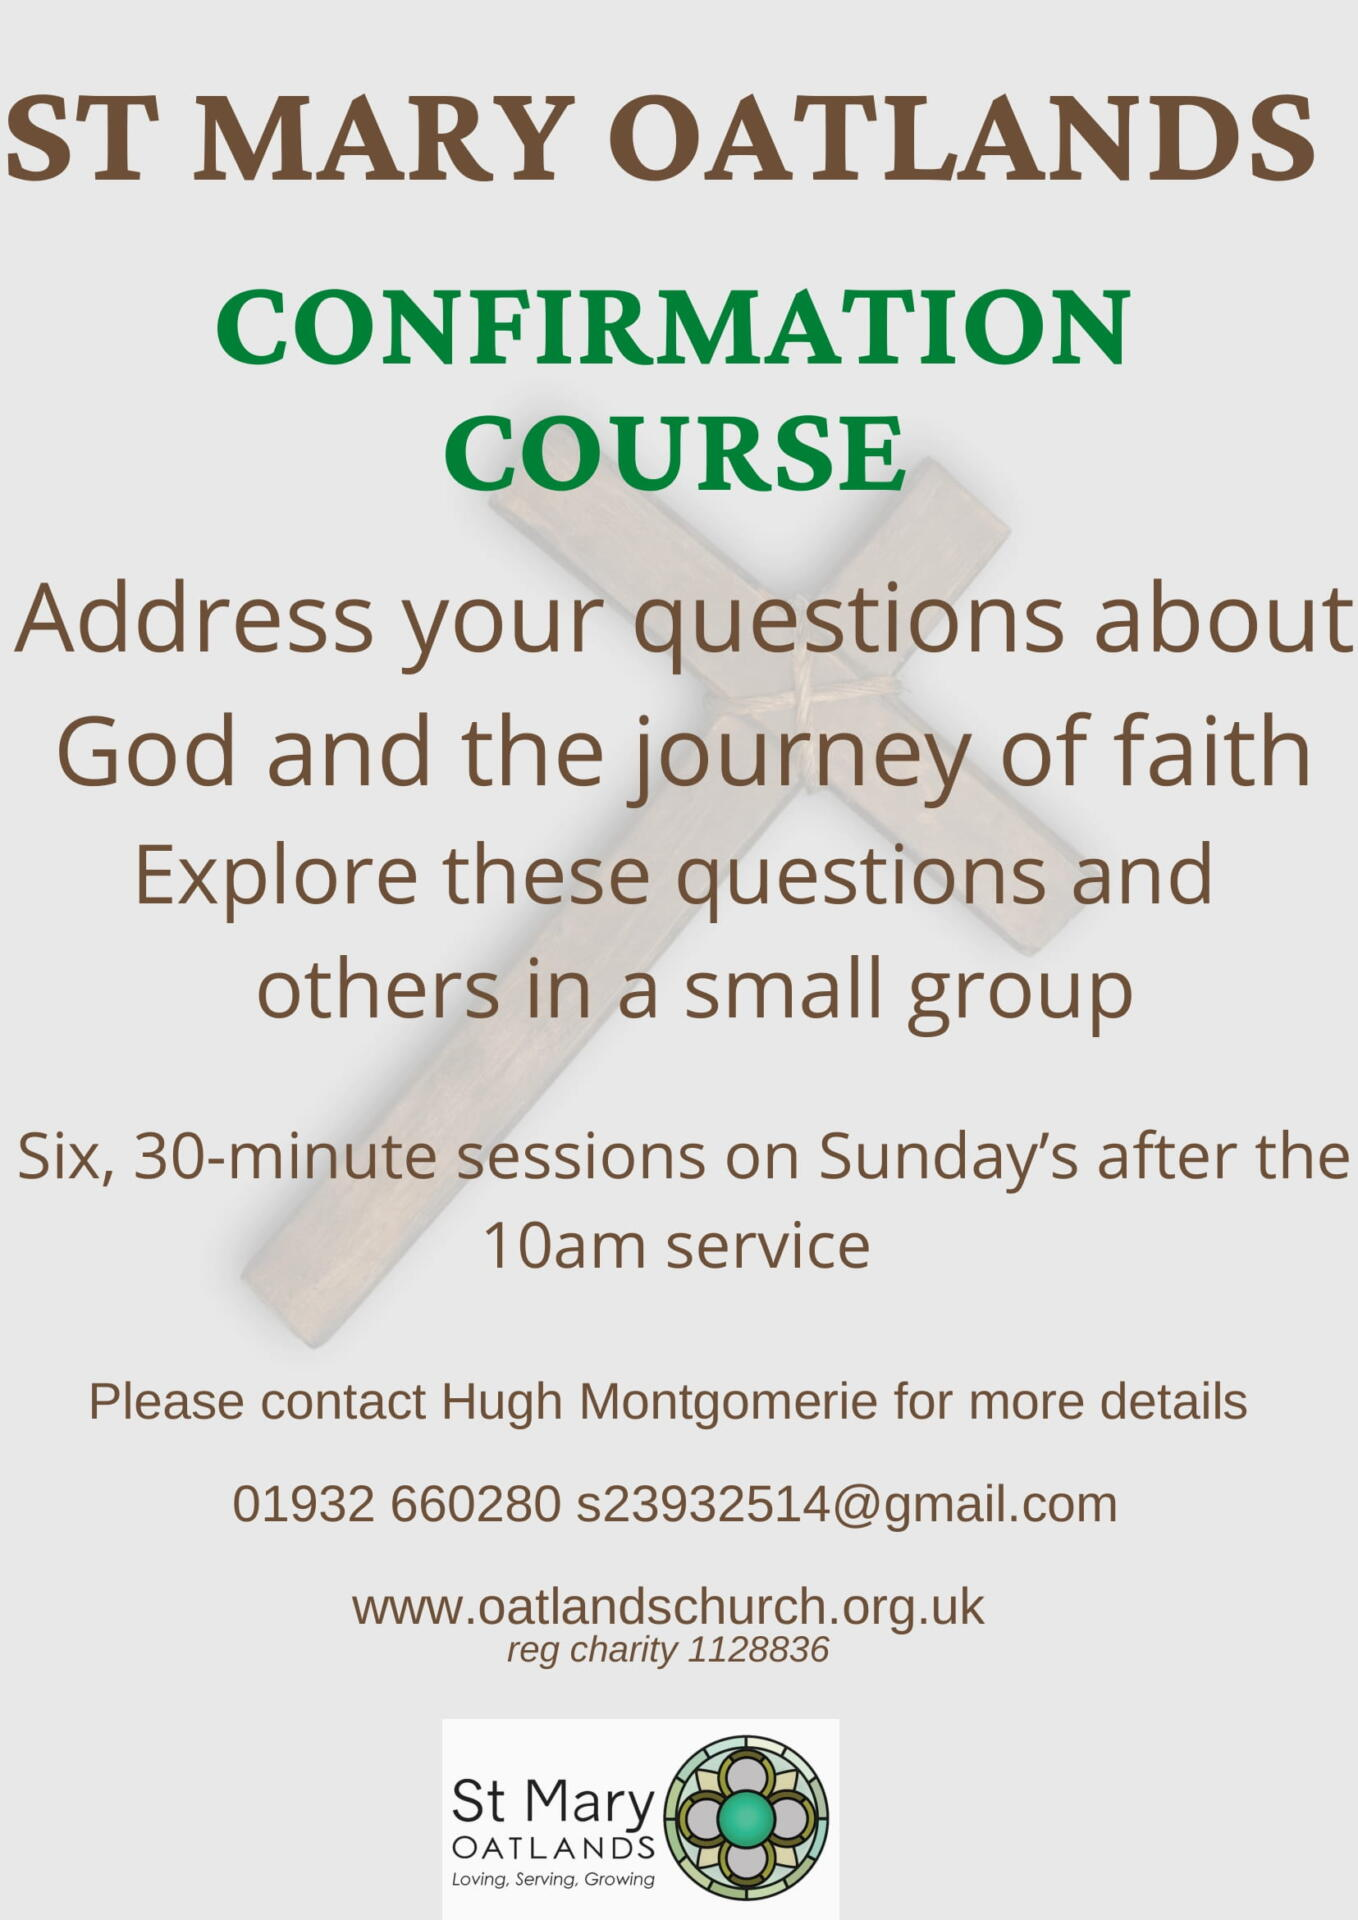 Confirmation Course @ St Mary Oatlands | England | United Kingdom